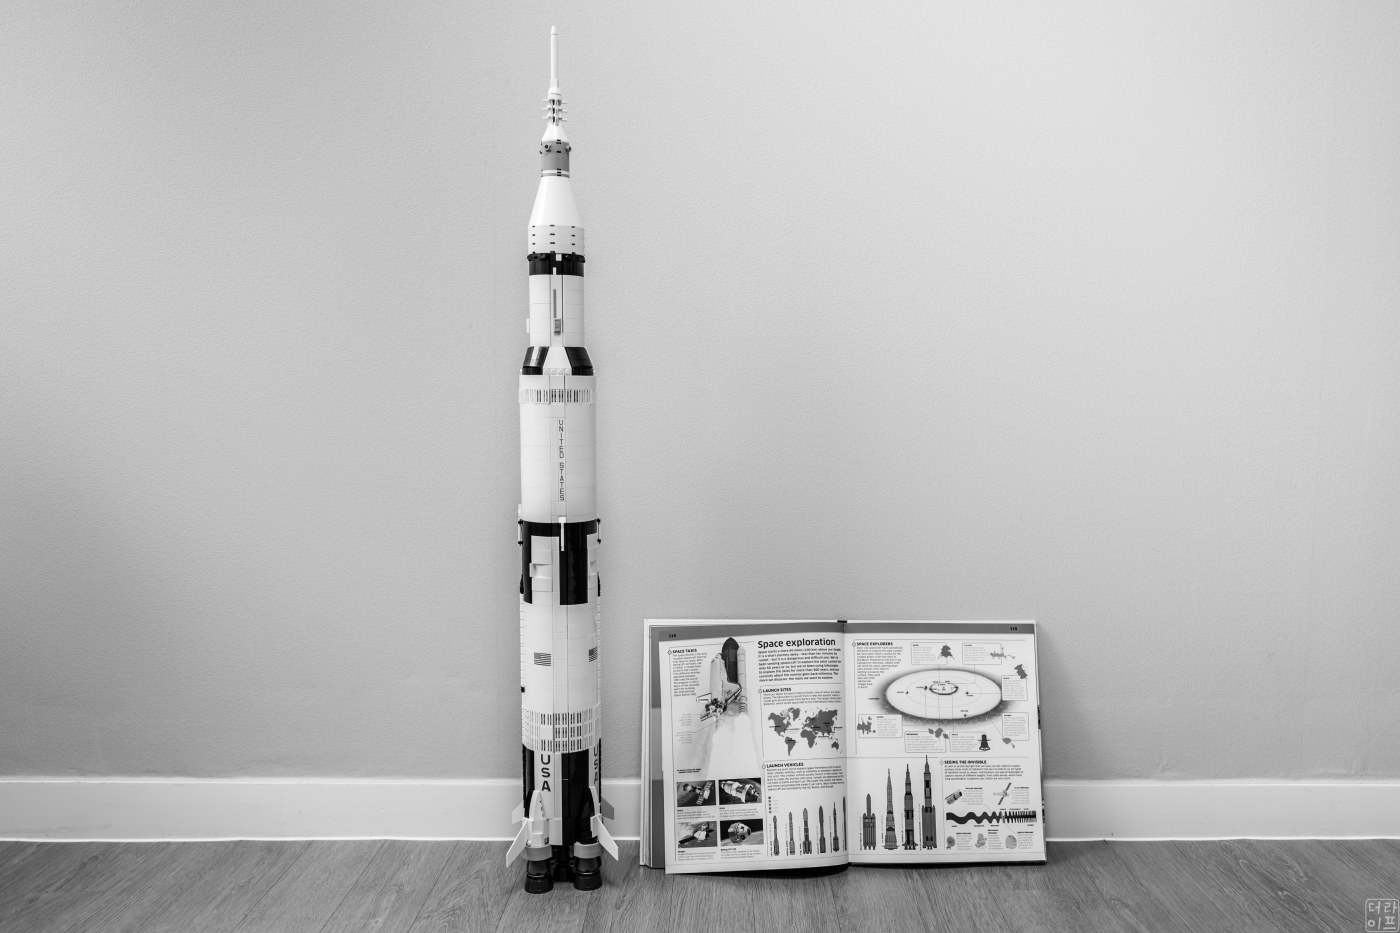 It took me 6 hours to make this lego rocket.